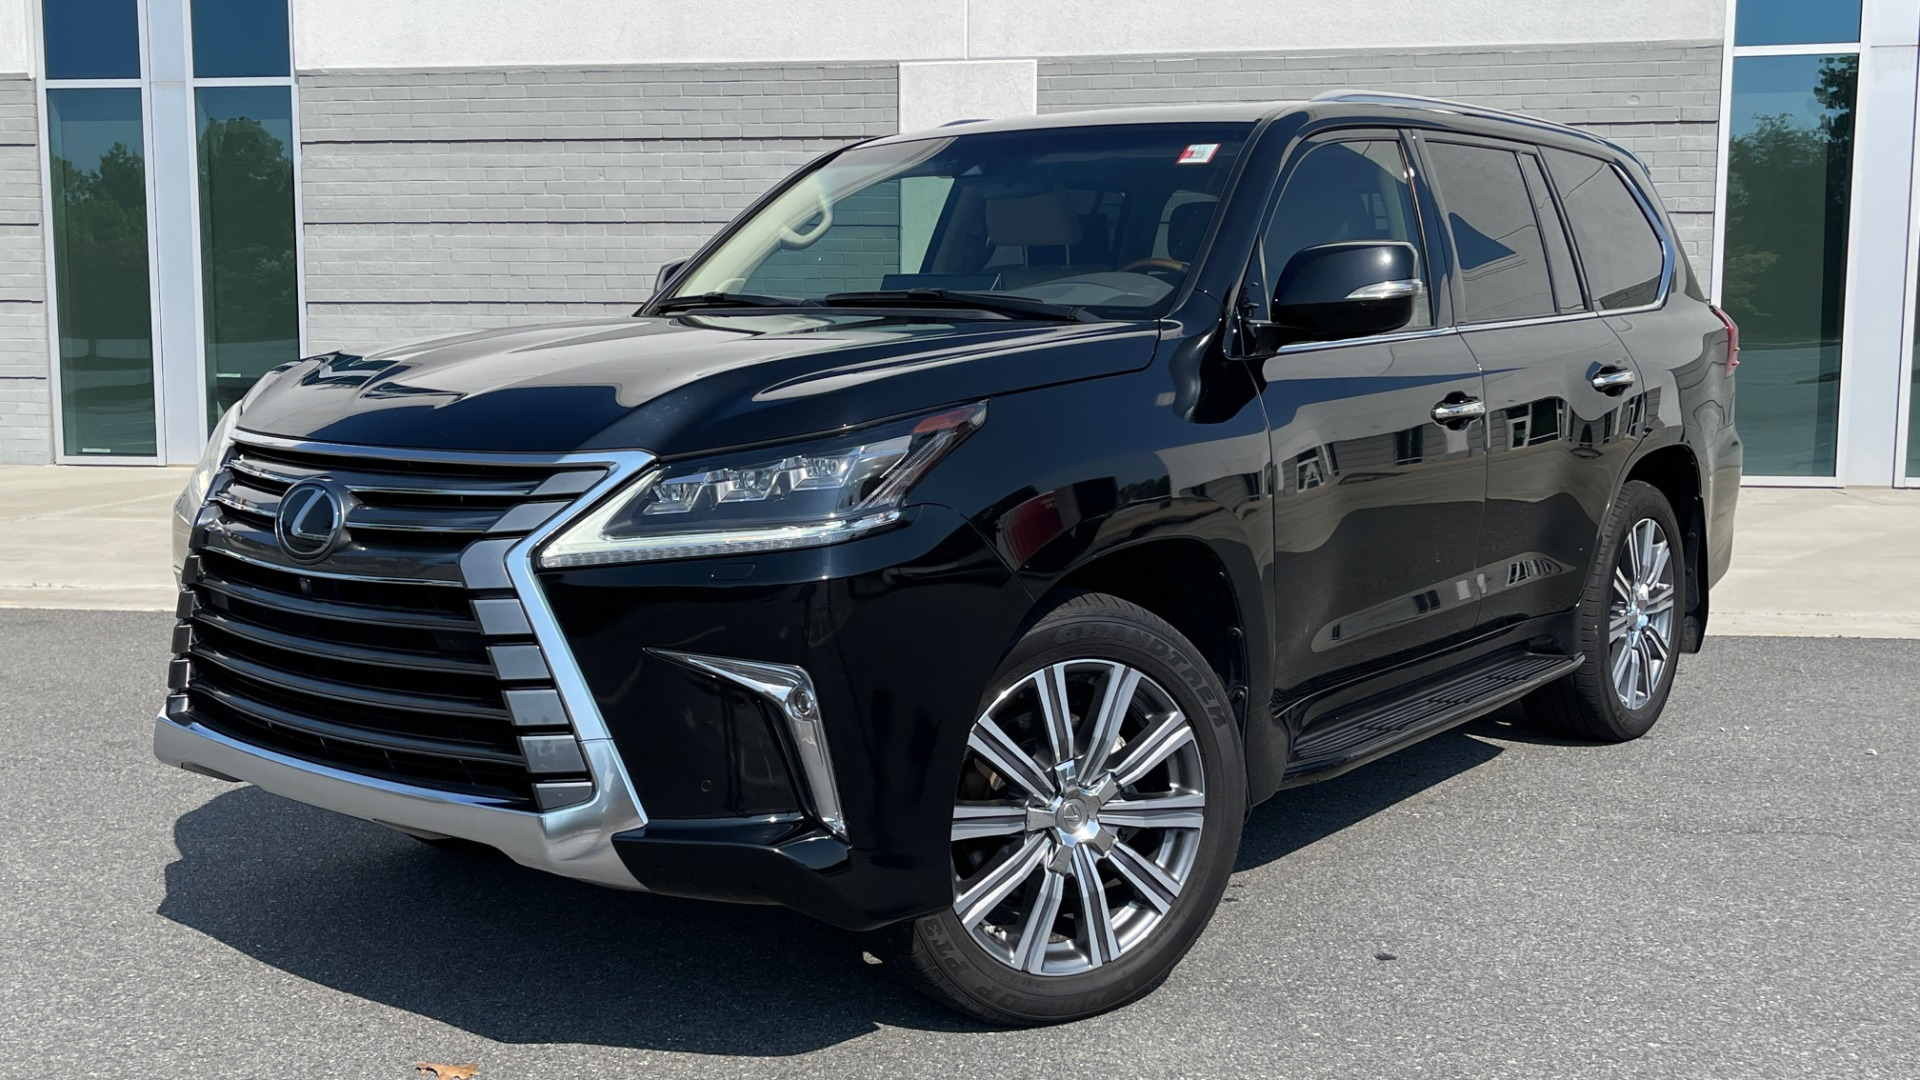 Used 2017 Lexus LX 570 LUXURY / 5.7L V8 / NAV / SUNROOF / 3-ROW / DVD / REARVIEW for sale $63,995 at Formula Imports in Charlotte NC 28227 1